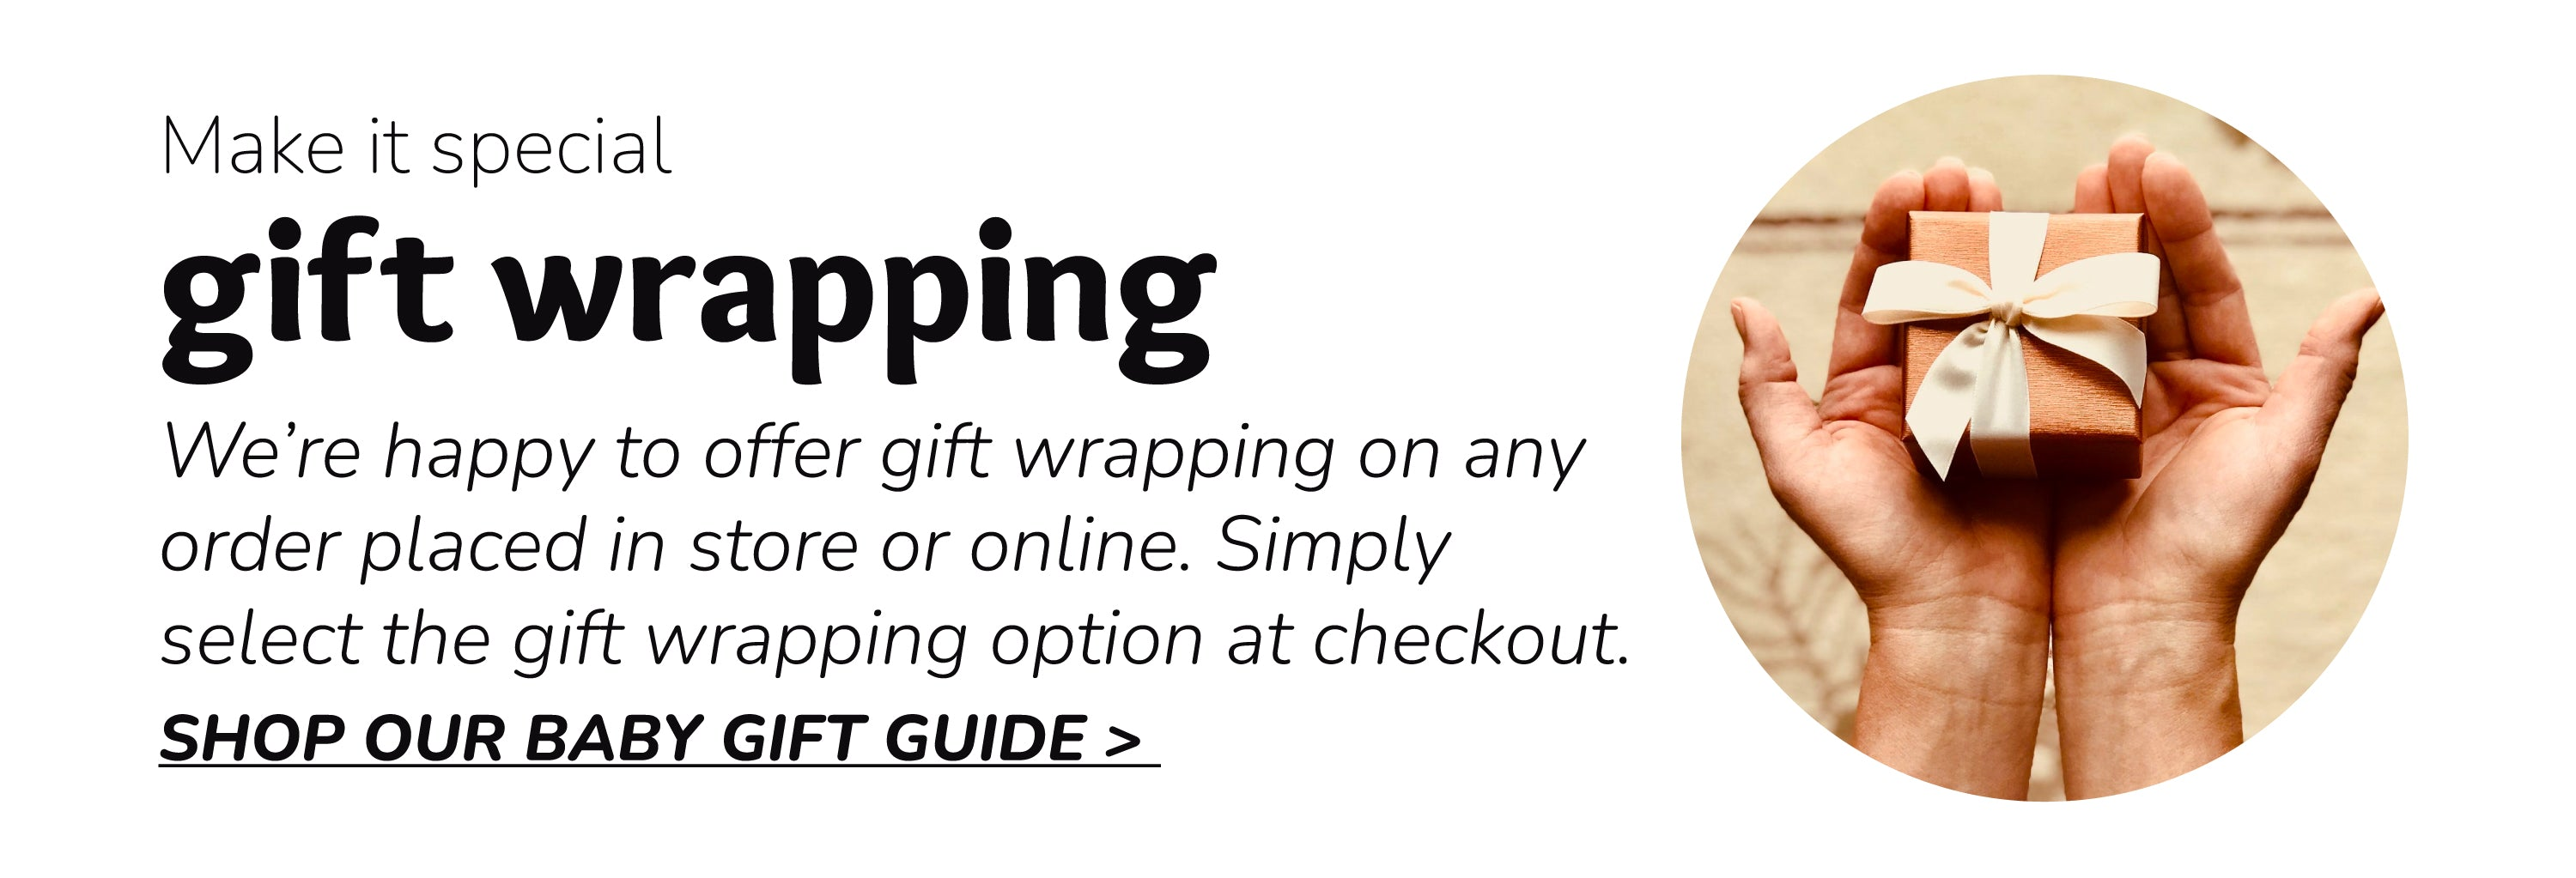 Gift Wrapping | We're happy to offer gift wrapping on any order placed in store or online. Simply select the gift wrapping option at checkout. SHOP OUR BABY GIFT GUIDE >